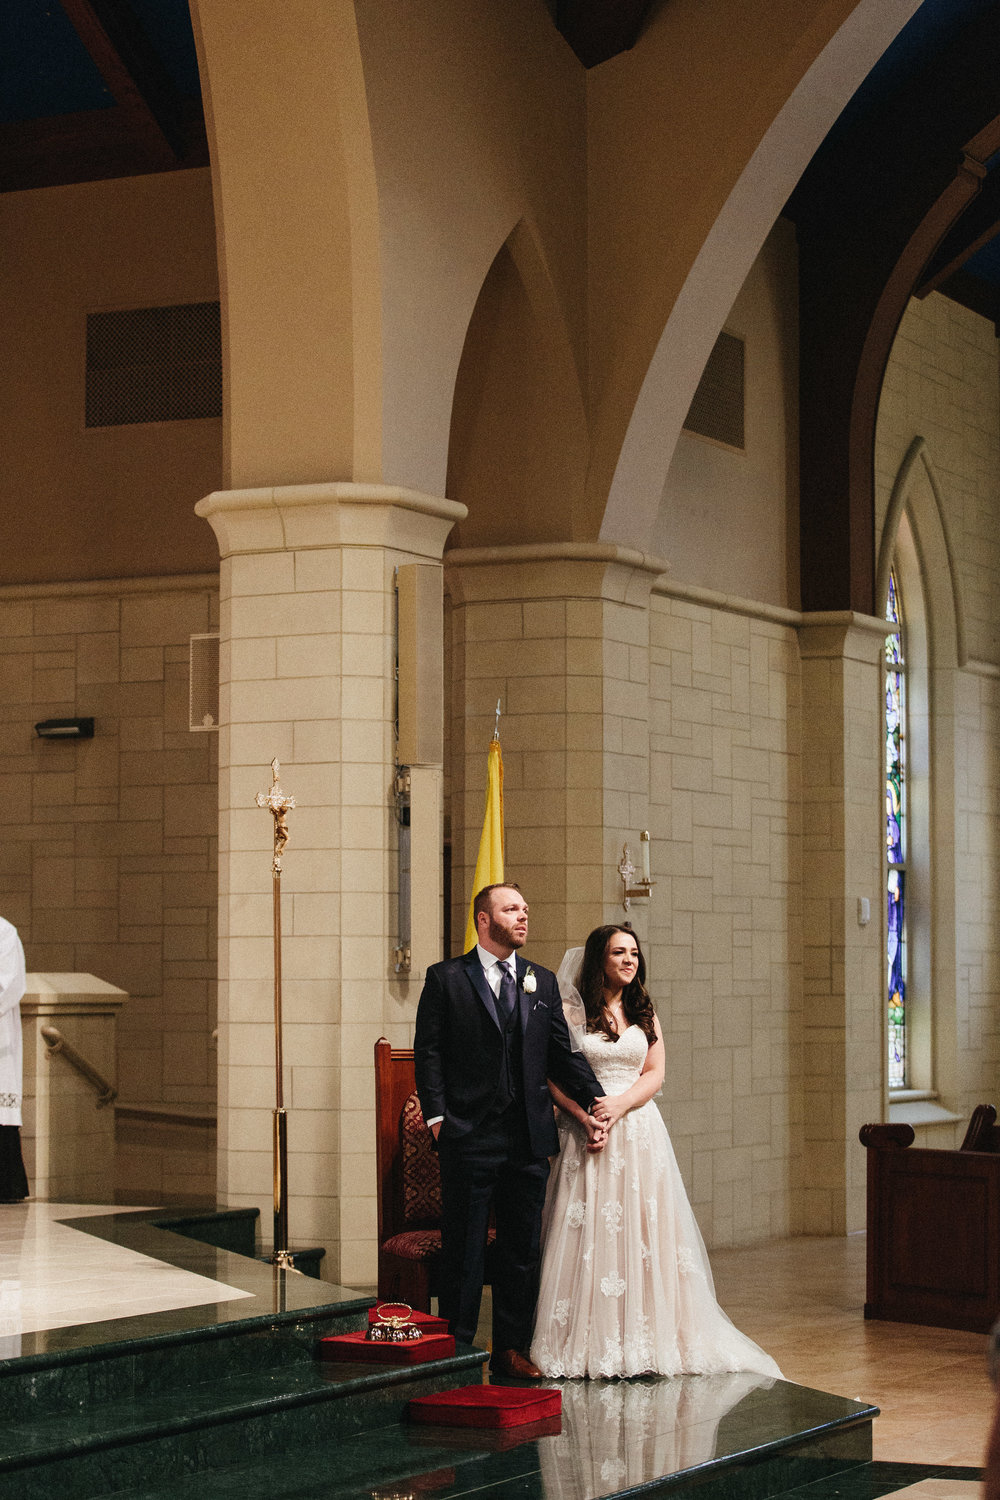 roswell_st_peter_chanel_catholic_avalon_hotel_alpharetta_wedding-1483.jpg